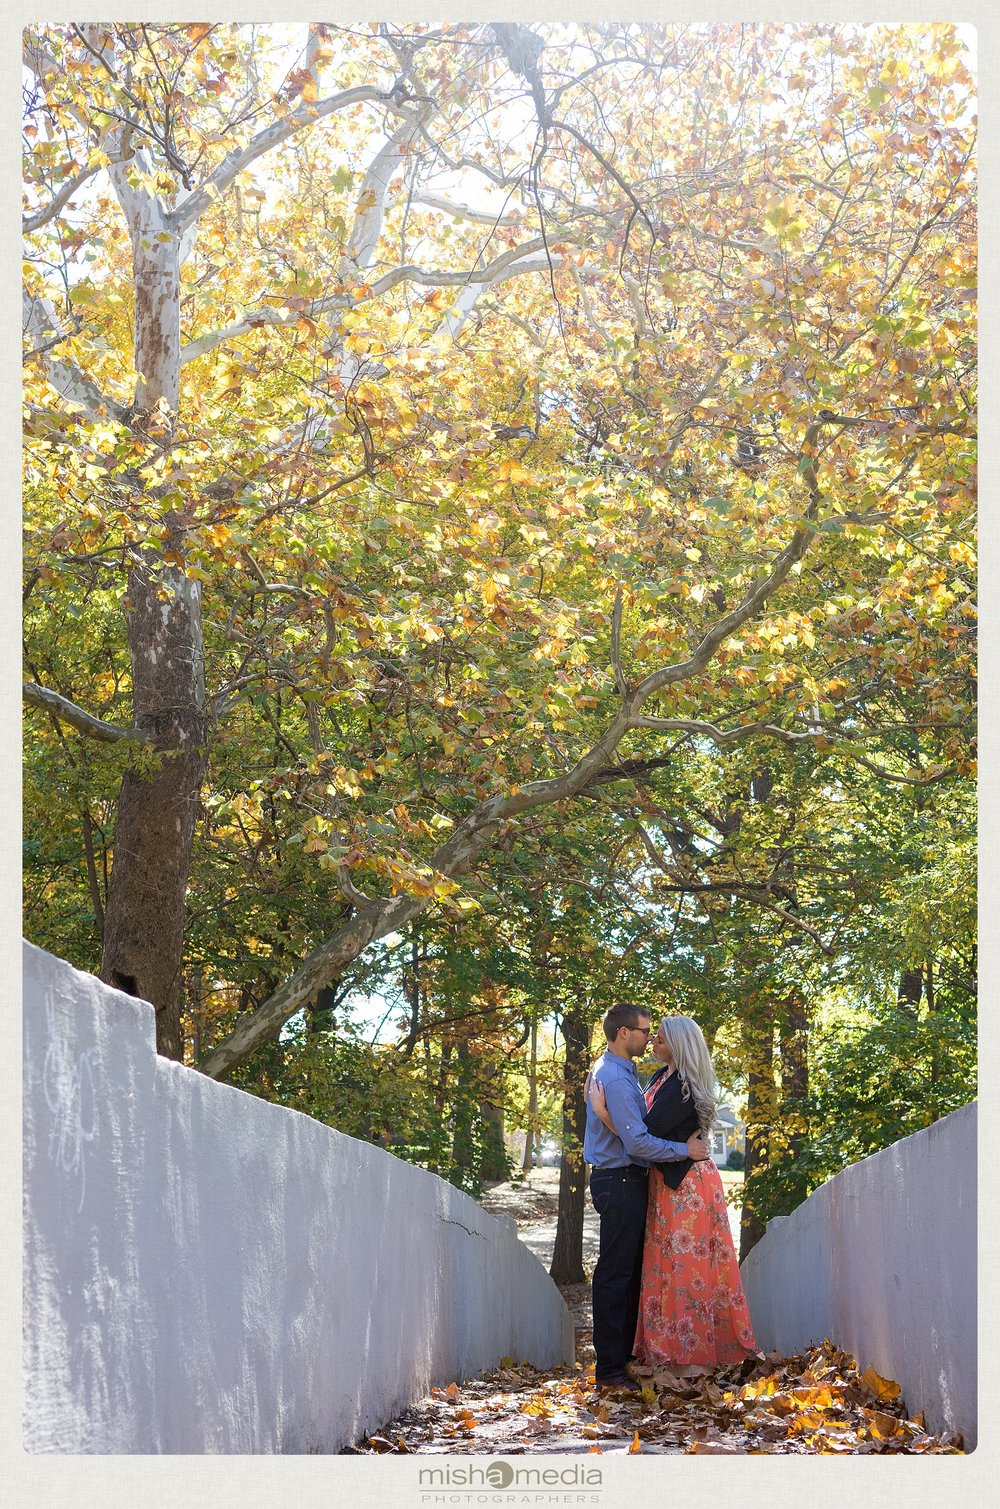 Outdoor-Engagement-Session-at-Dellwood-Park_0001.jpg